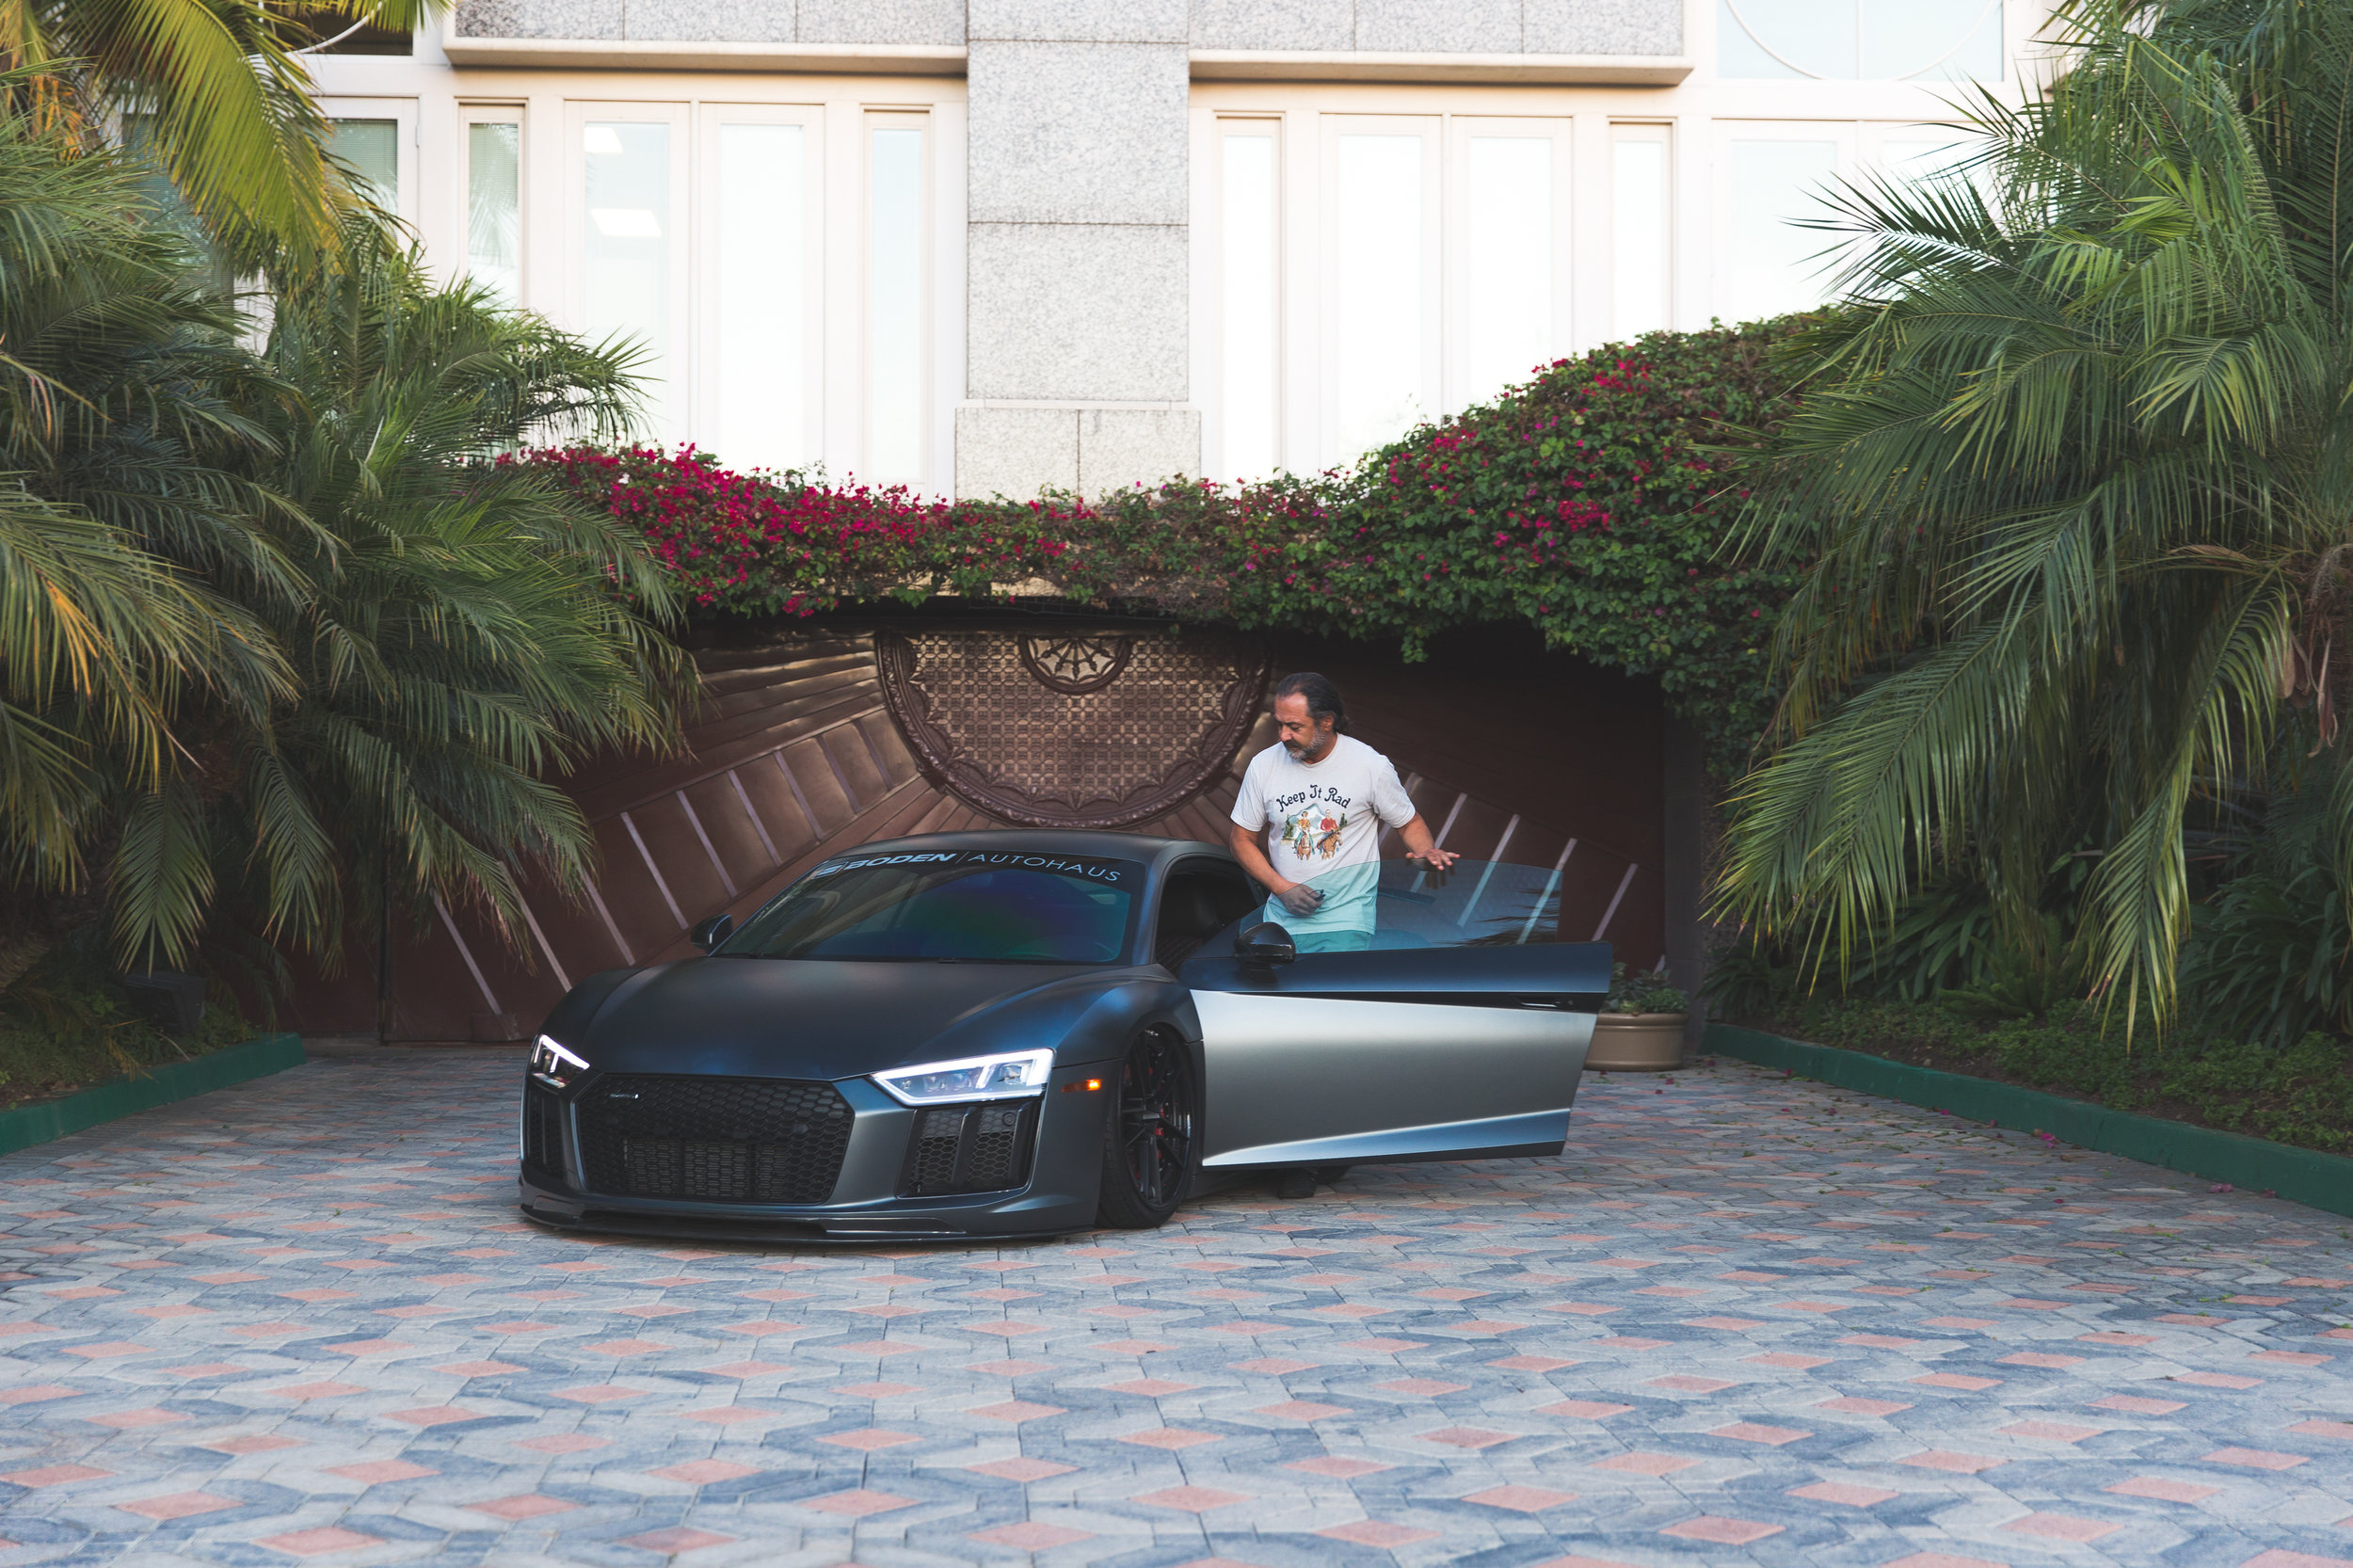 Stay_Driven_Page_R8_Newport-22.jpg